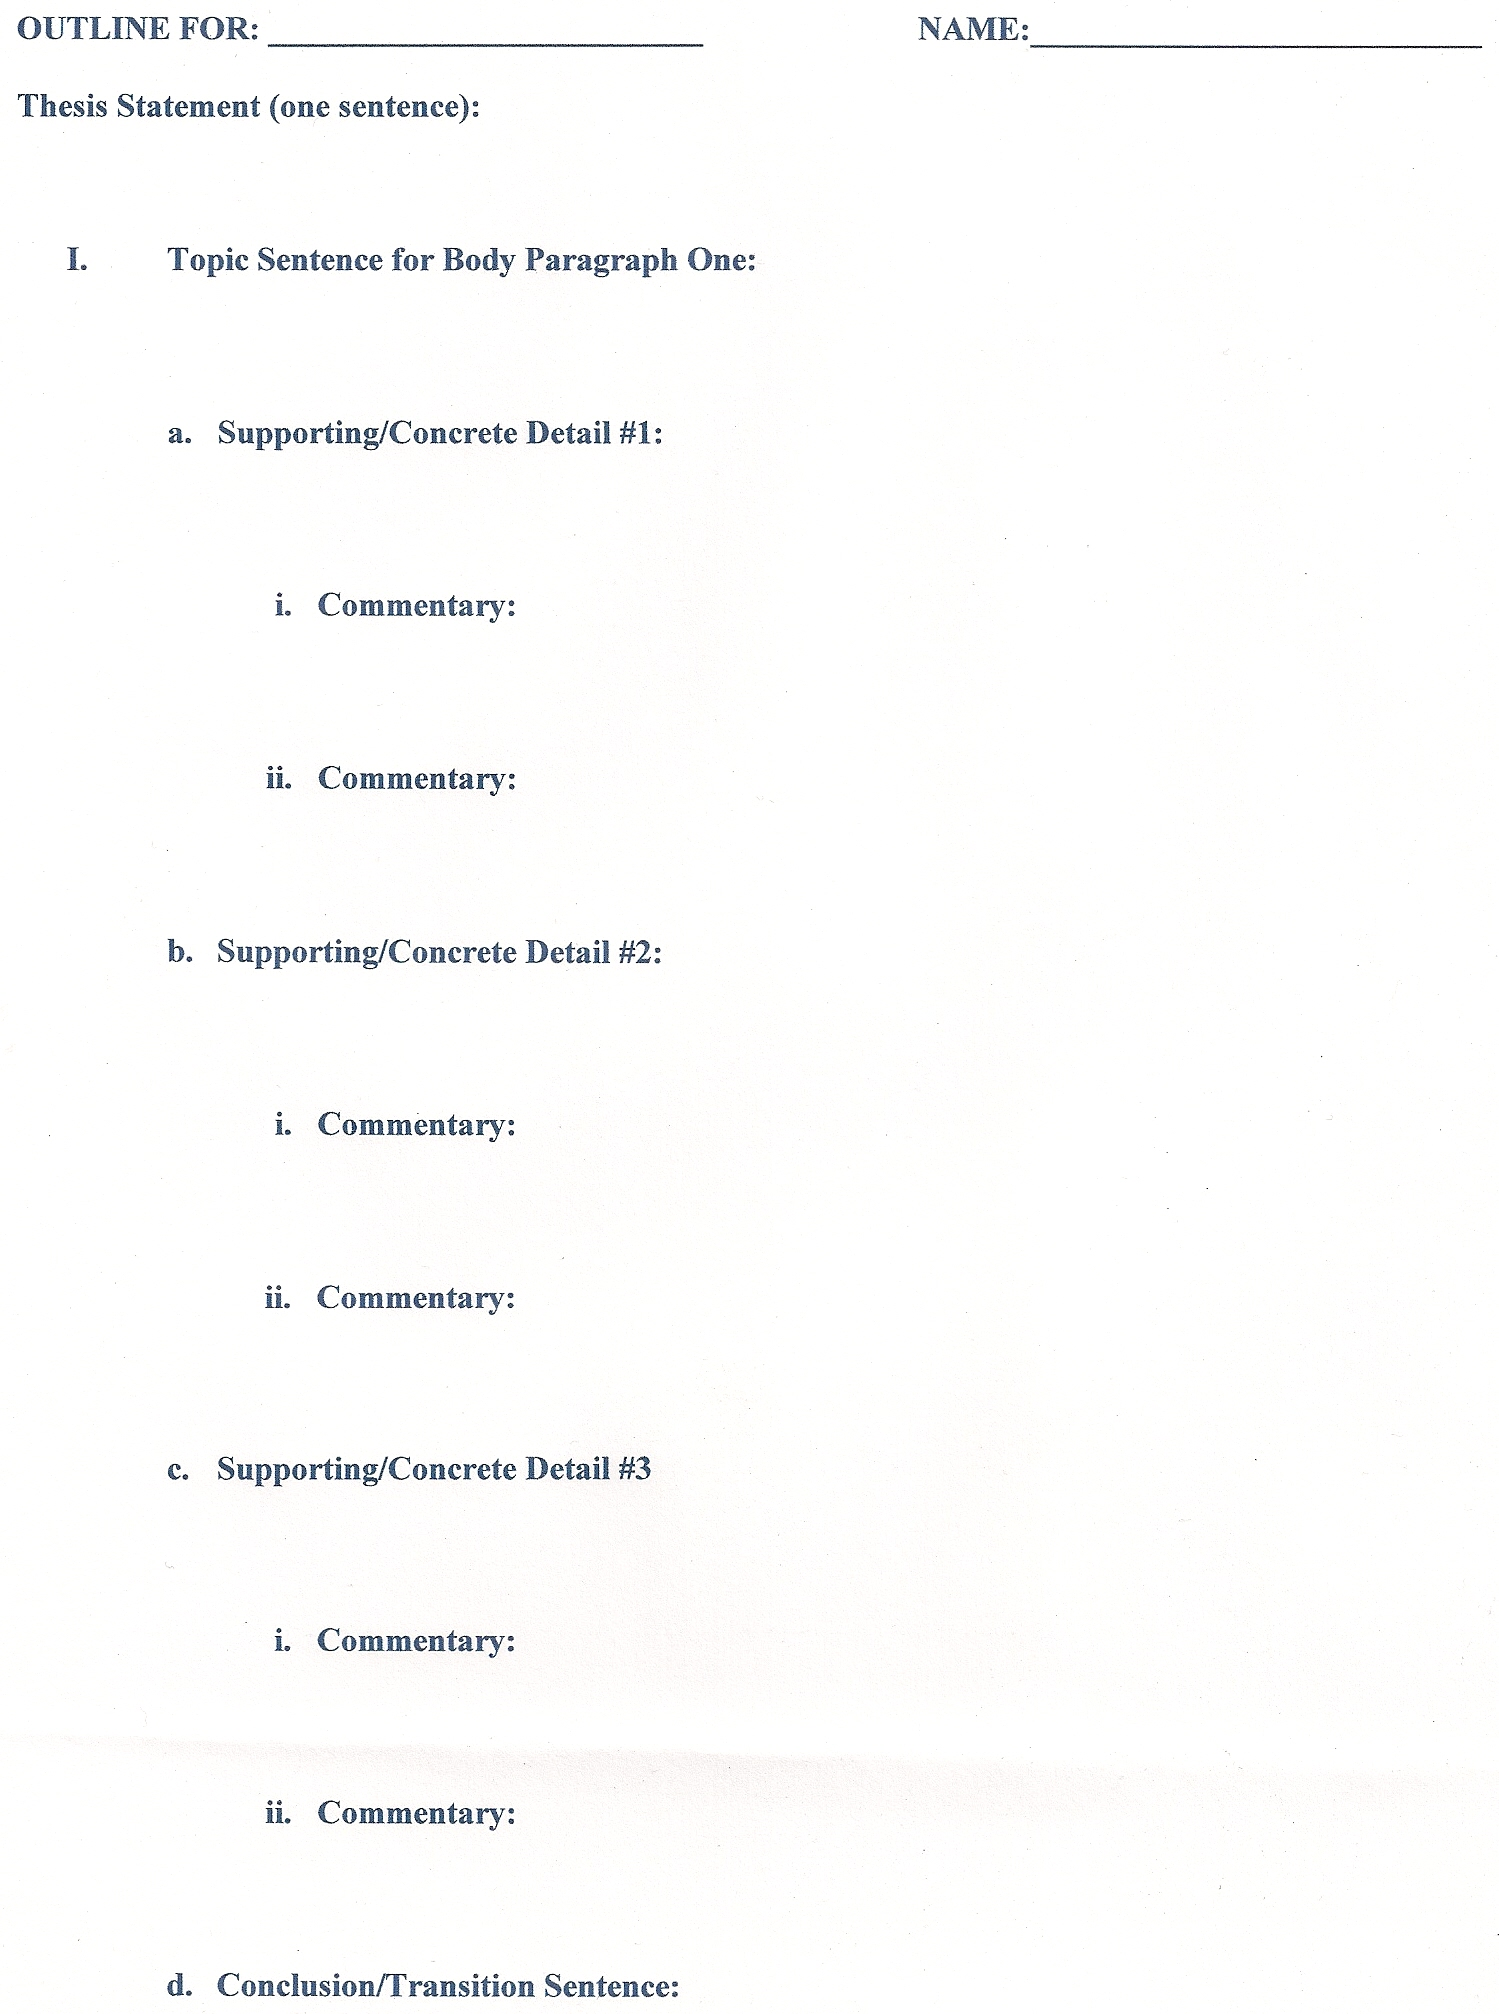 019 Research Paper Outline Mla Unforgettable Blank Template Format College Full